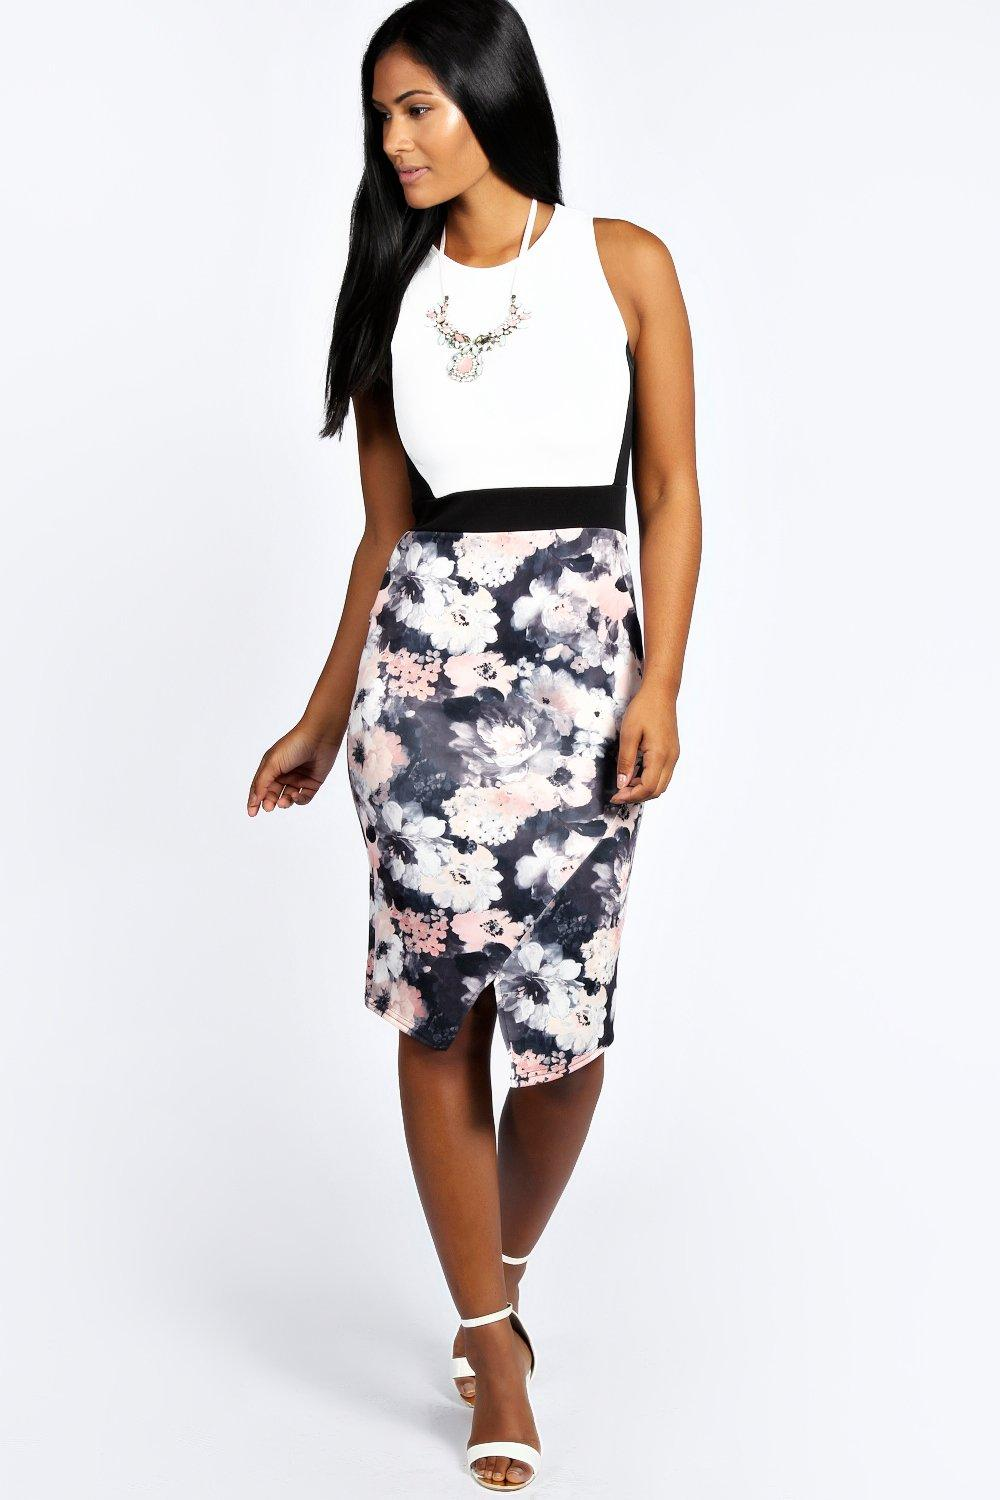 Talia Floral Contrast Asymetric Midi Bodycon Dress at boohoo.com